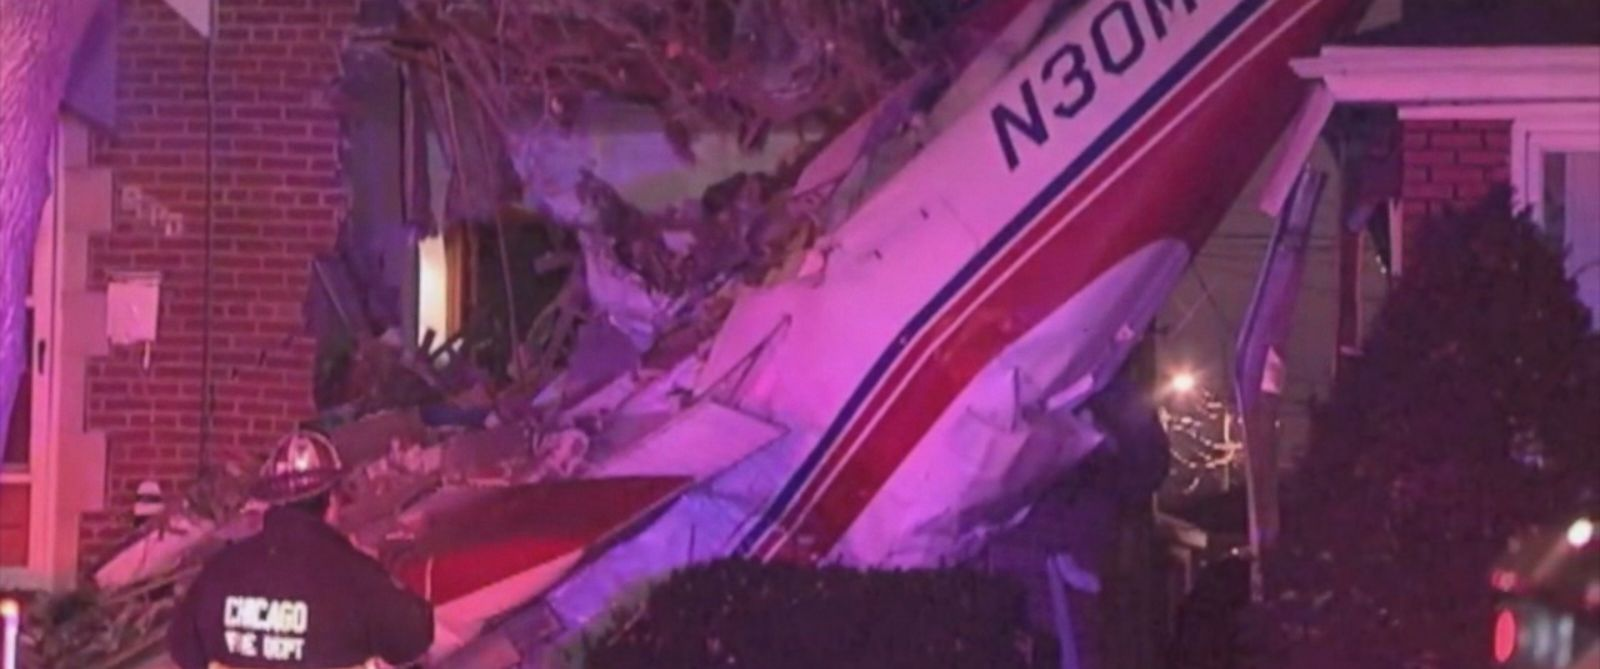 PHOTO: Authorities are investigating after a plane crashed into a Chicago home, Nov. 18, 2014.